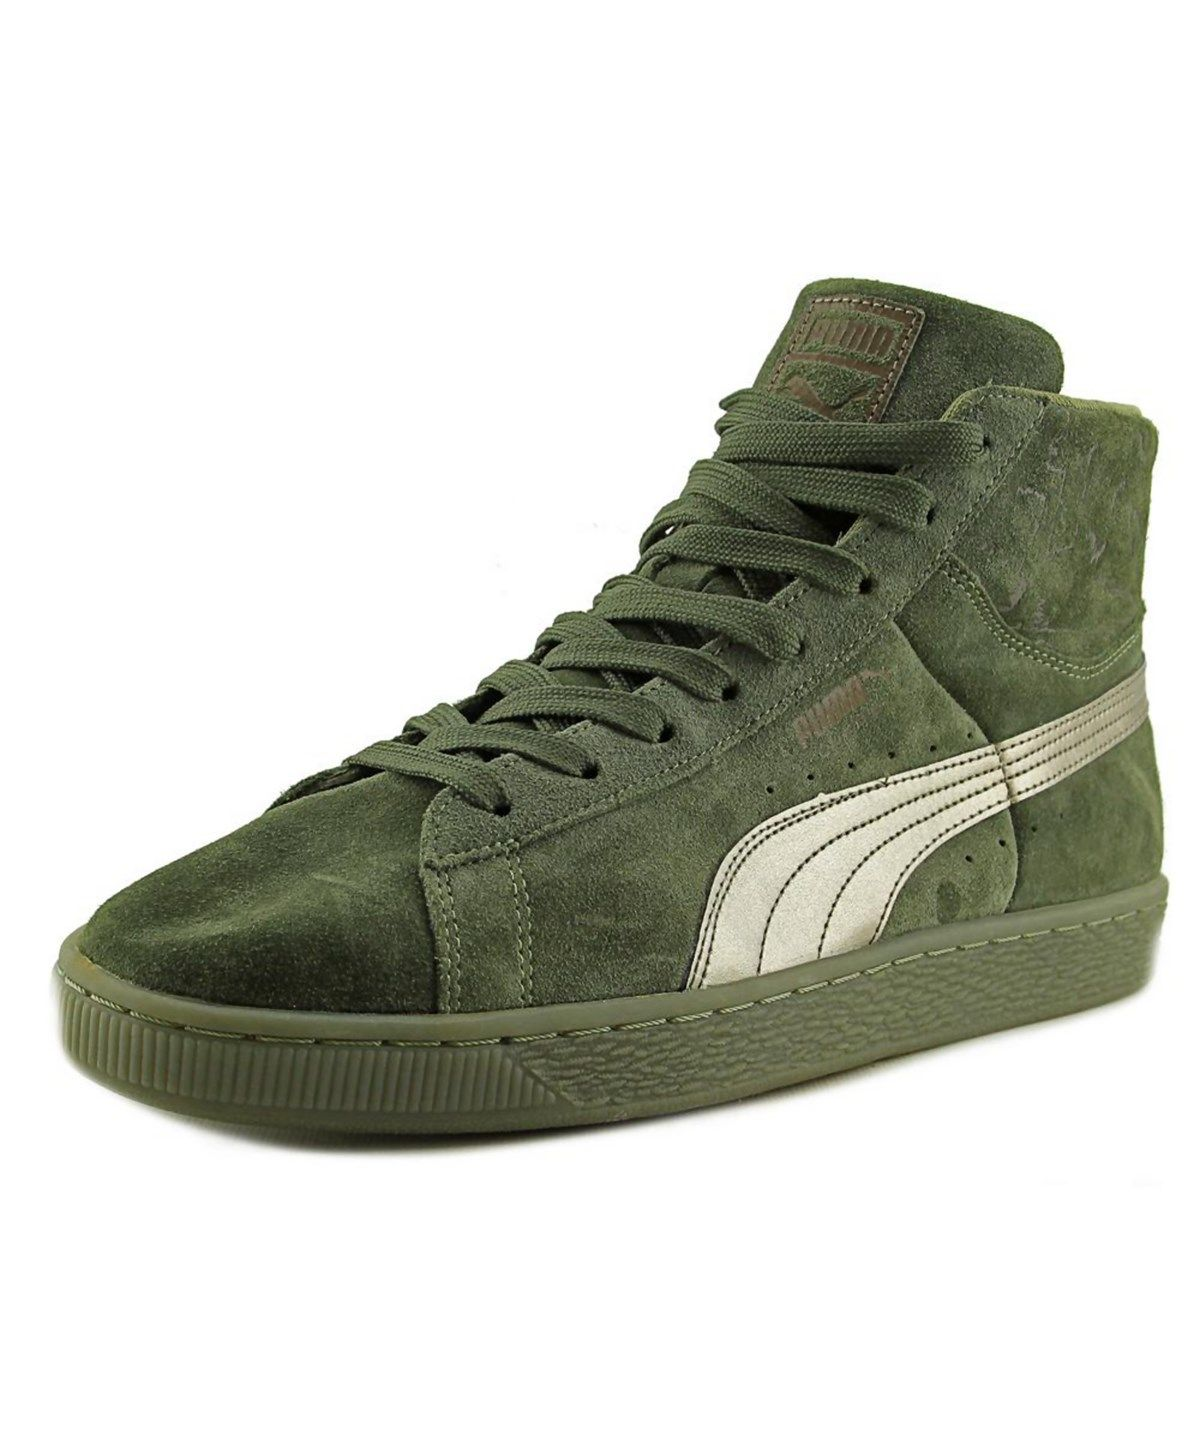 PUMA PUMA SUEDE MID CLASSIC MEN ROUND TOE SUEDE GREEN SNEAKERS .  puma   shoes  sneakers 88d07889e